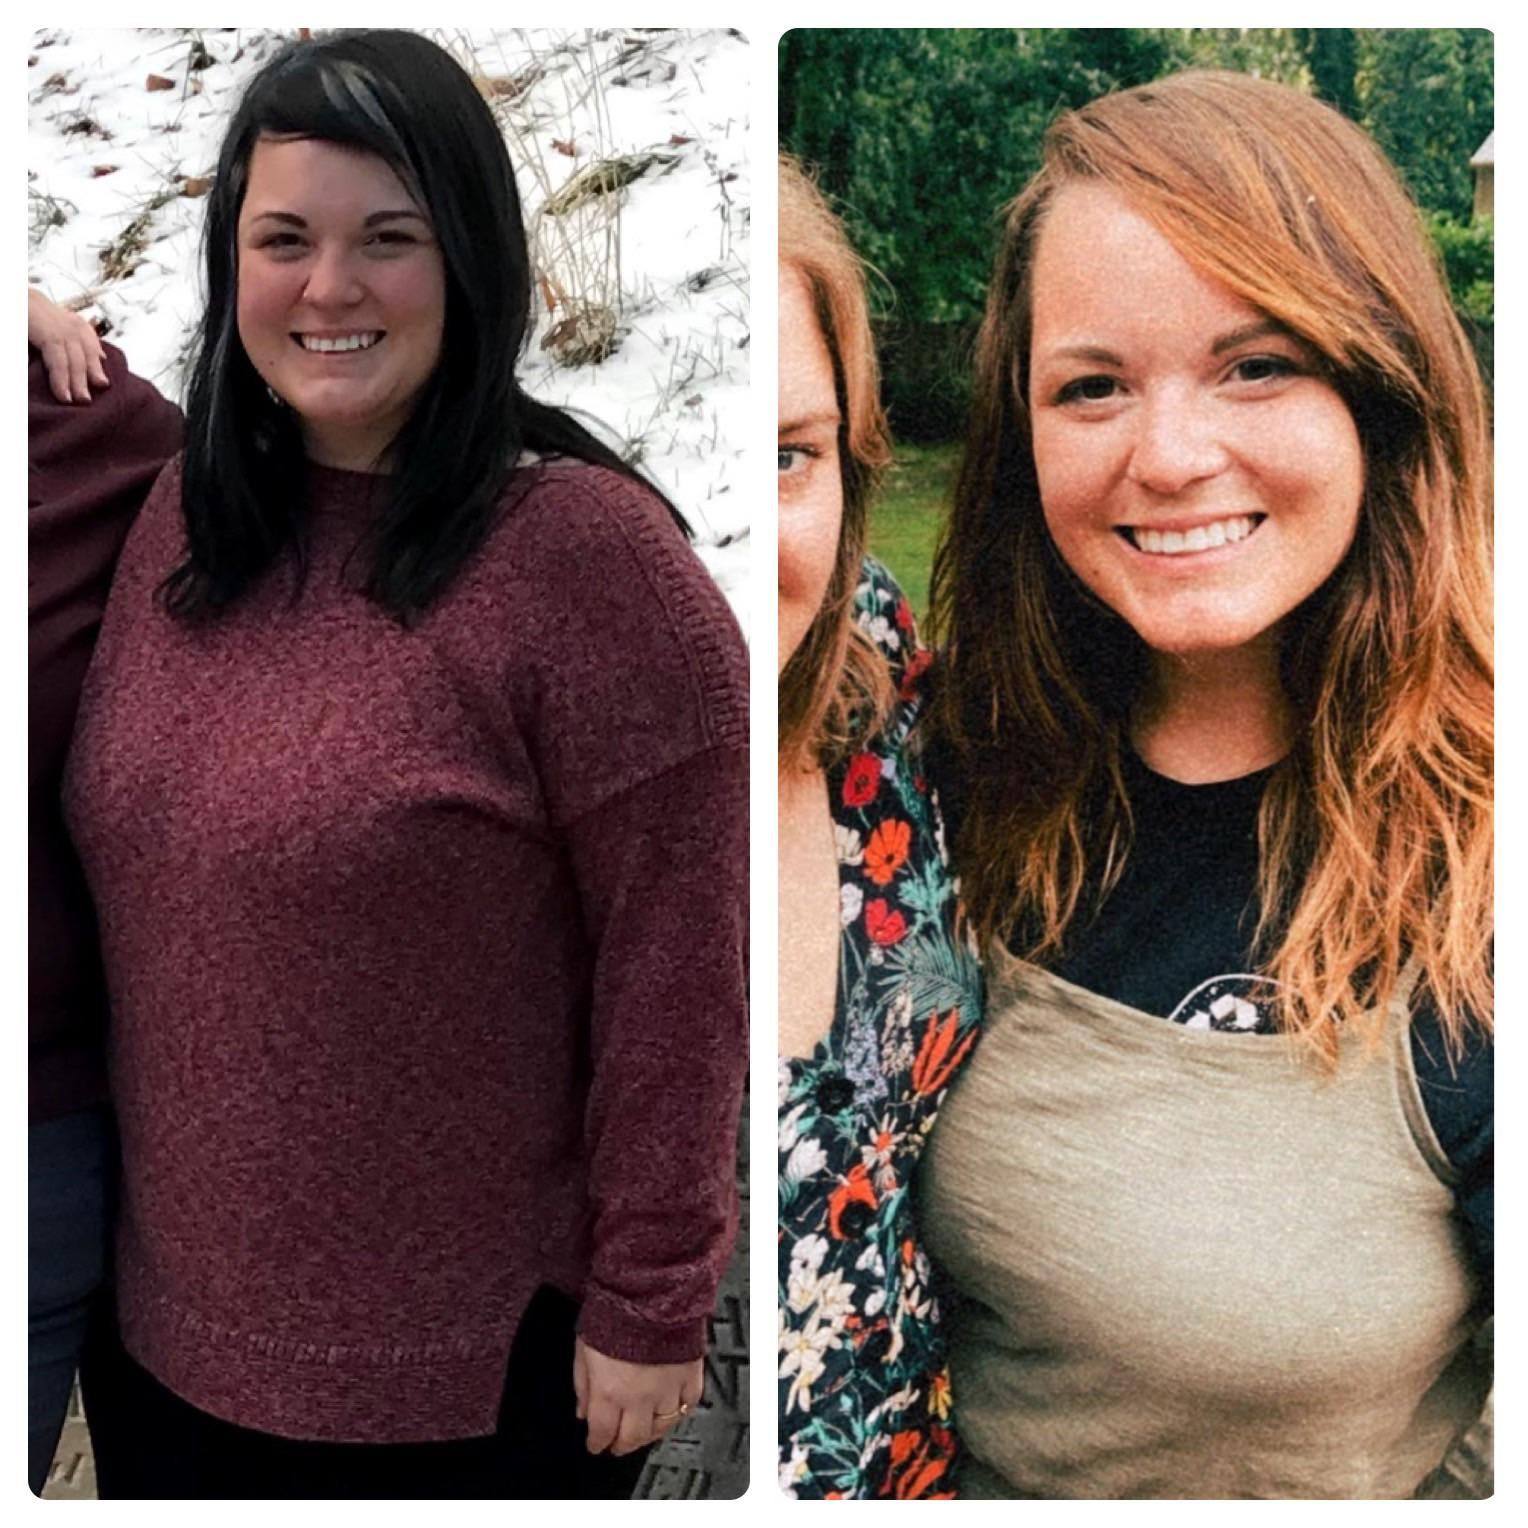 5 foot 6 Female Before and After 52 lbs Weight Loss 251 lbs to 199 lbs